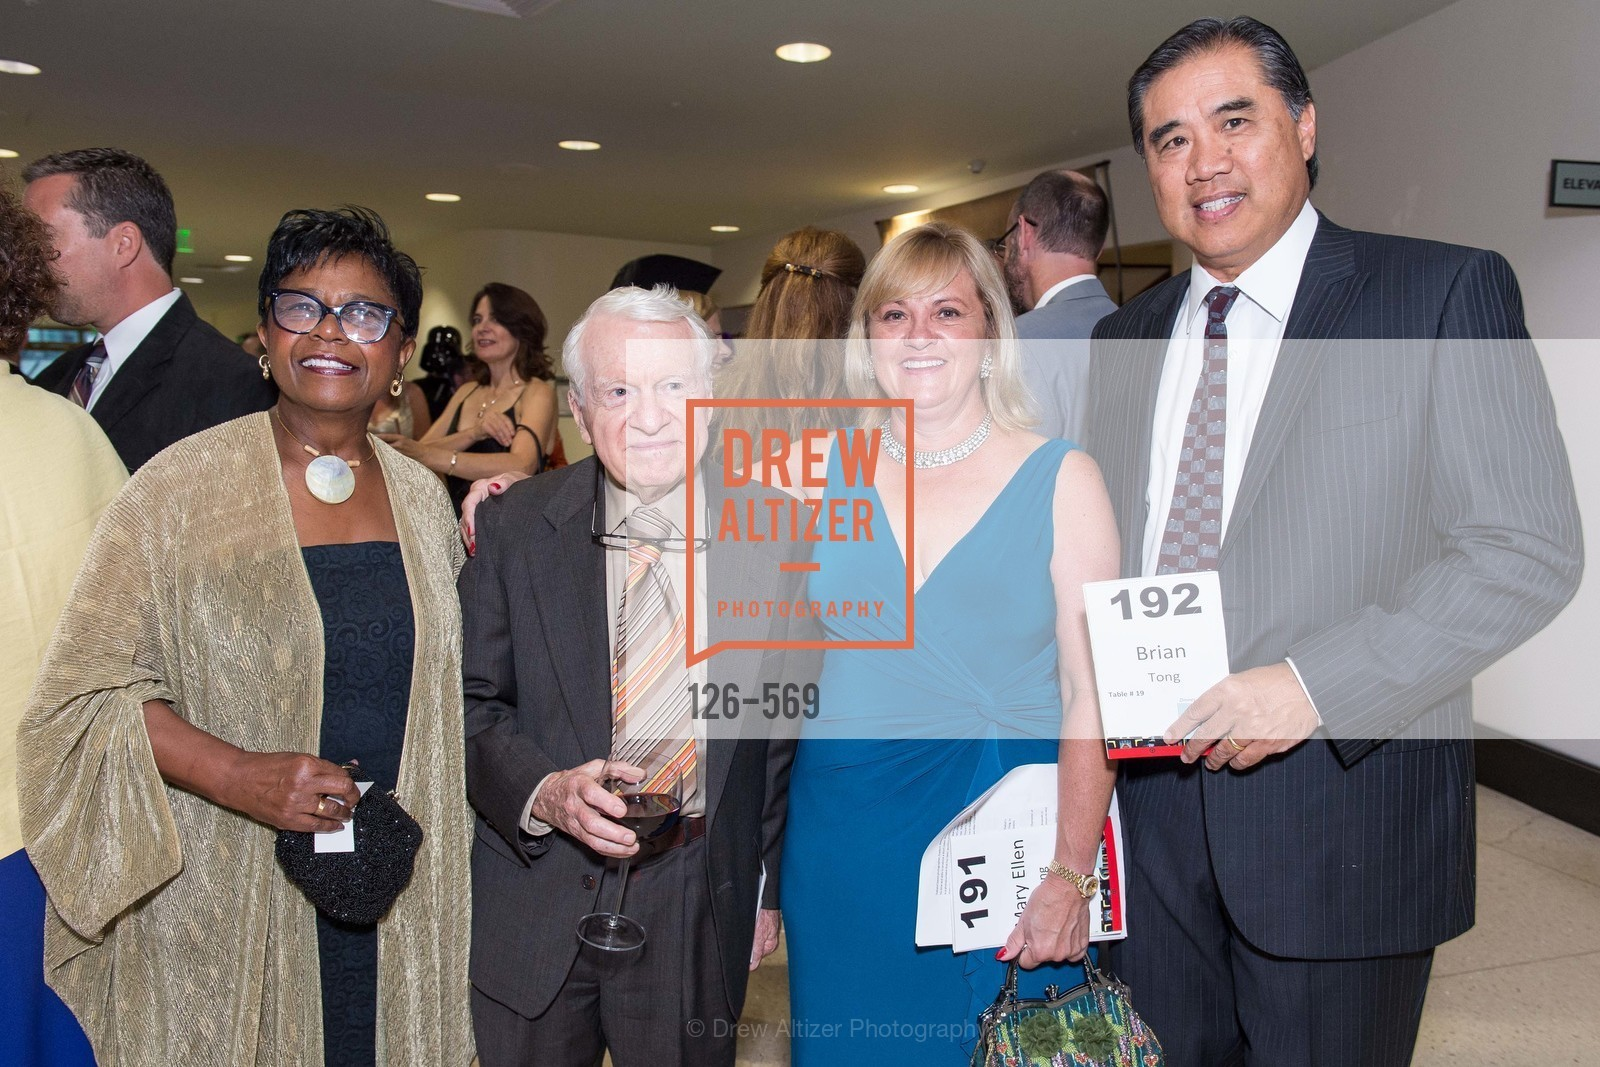 Helen Doelling, John Sutter, Mary Ellen Tong, Brian Tong, CHABOT Science Center STARLIGHT GALA, US, September 20th, 2014,Drew Altizer, Drew Altizer Photography, full-service agency, private events, San Francisco photographer, photographer california